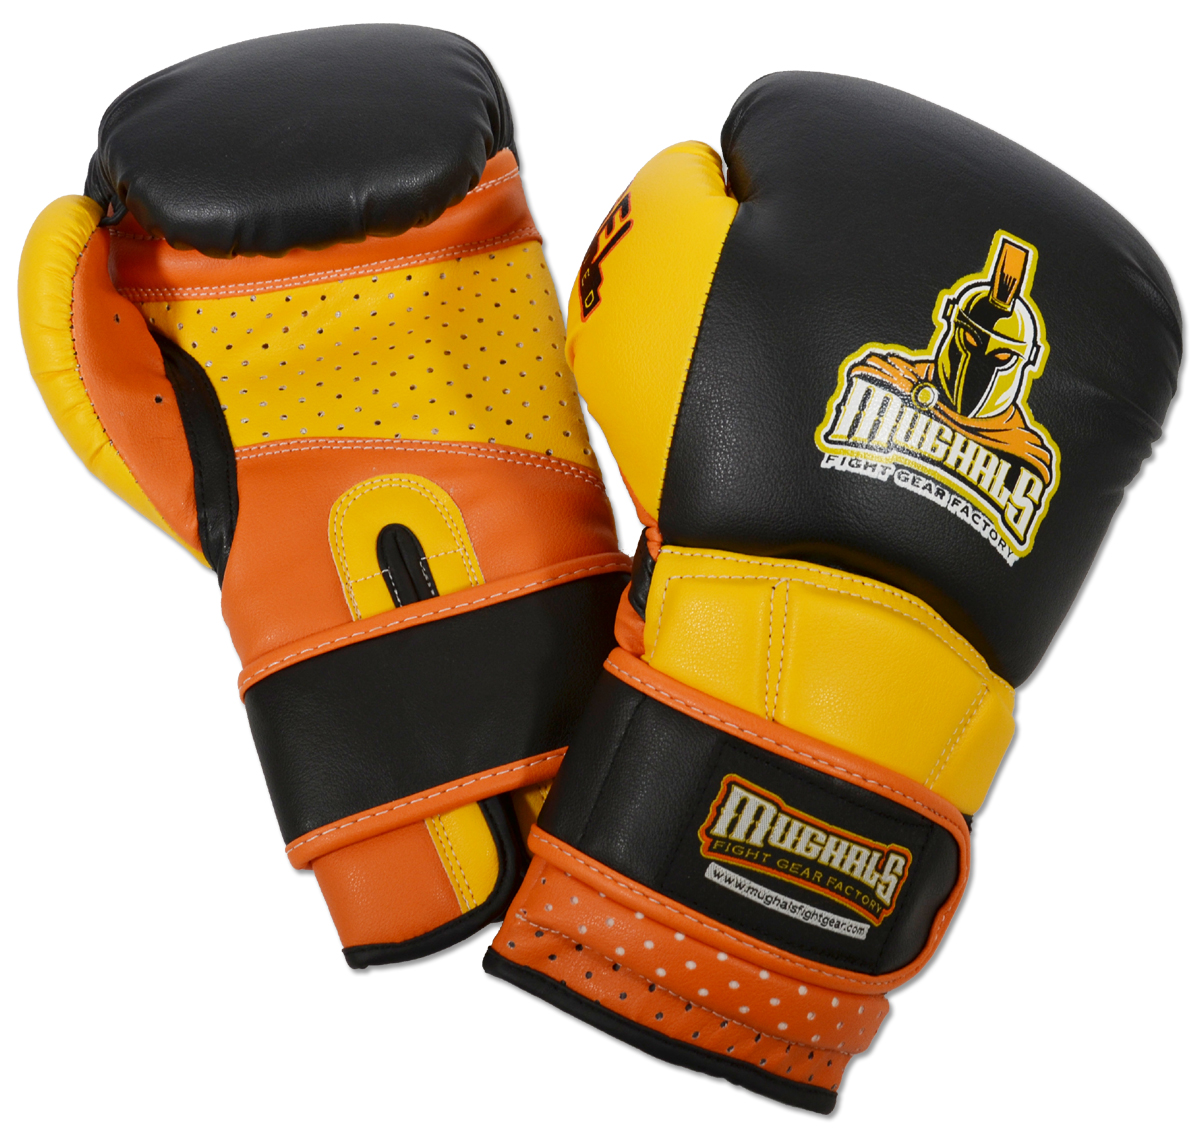 Molded-Foam and Gel-Lined Training Boxing Gloves